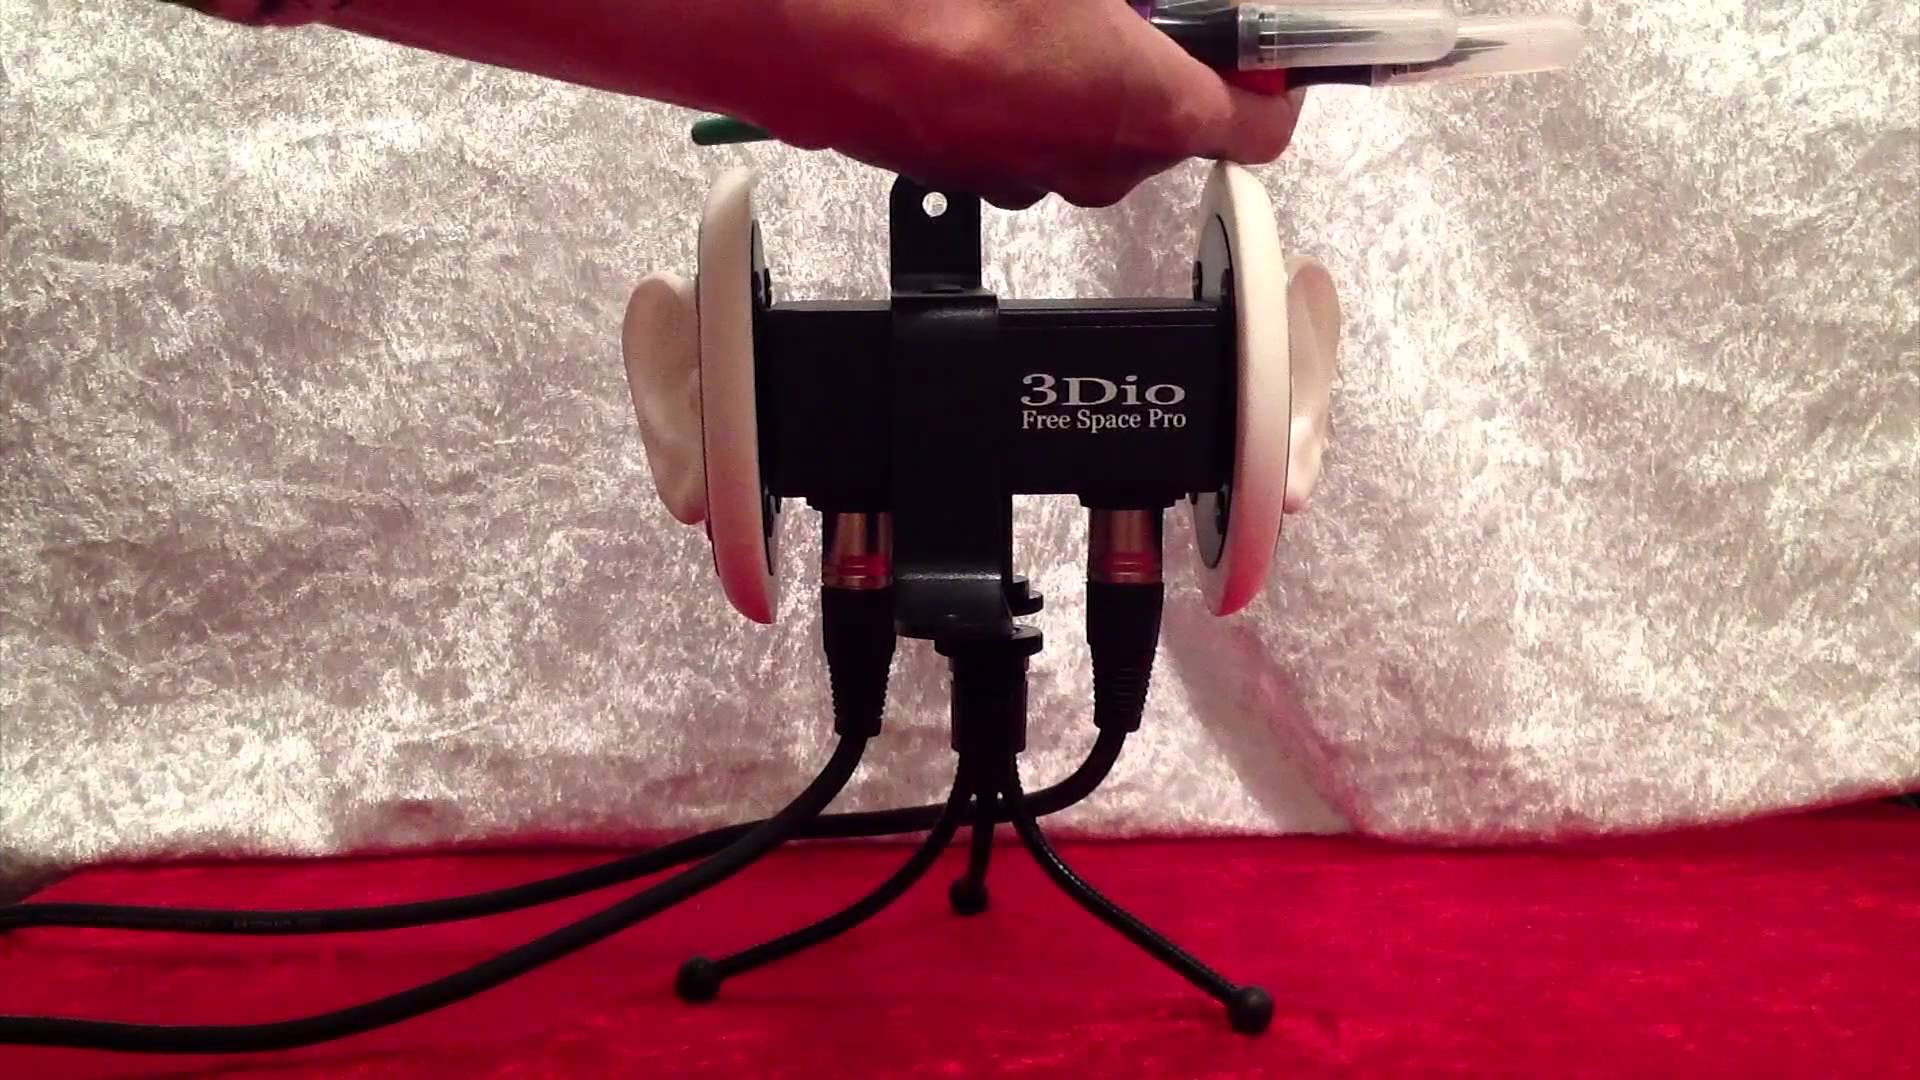 ASMR 3Dio Free Space Pro Binaural Mic Test – Crinkly Sounds, Microphone Brushing, Tapping